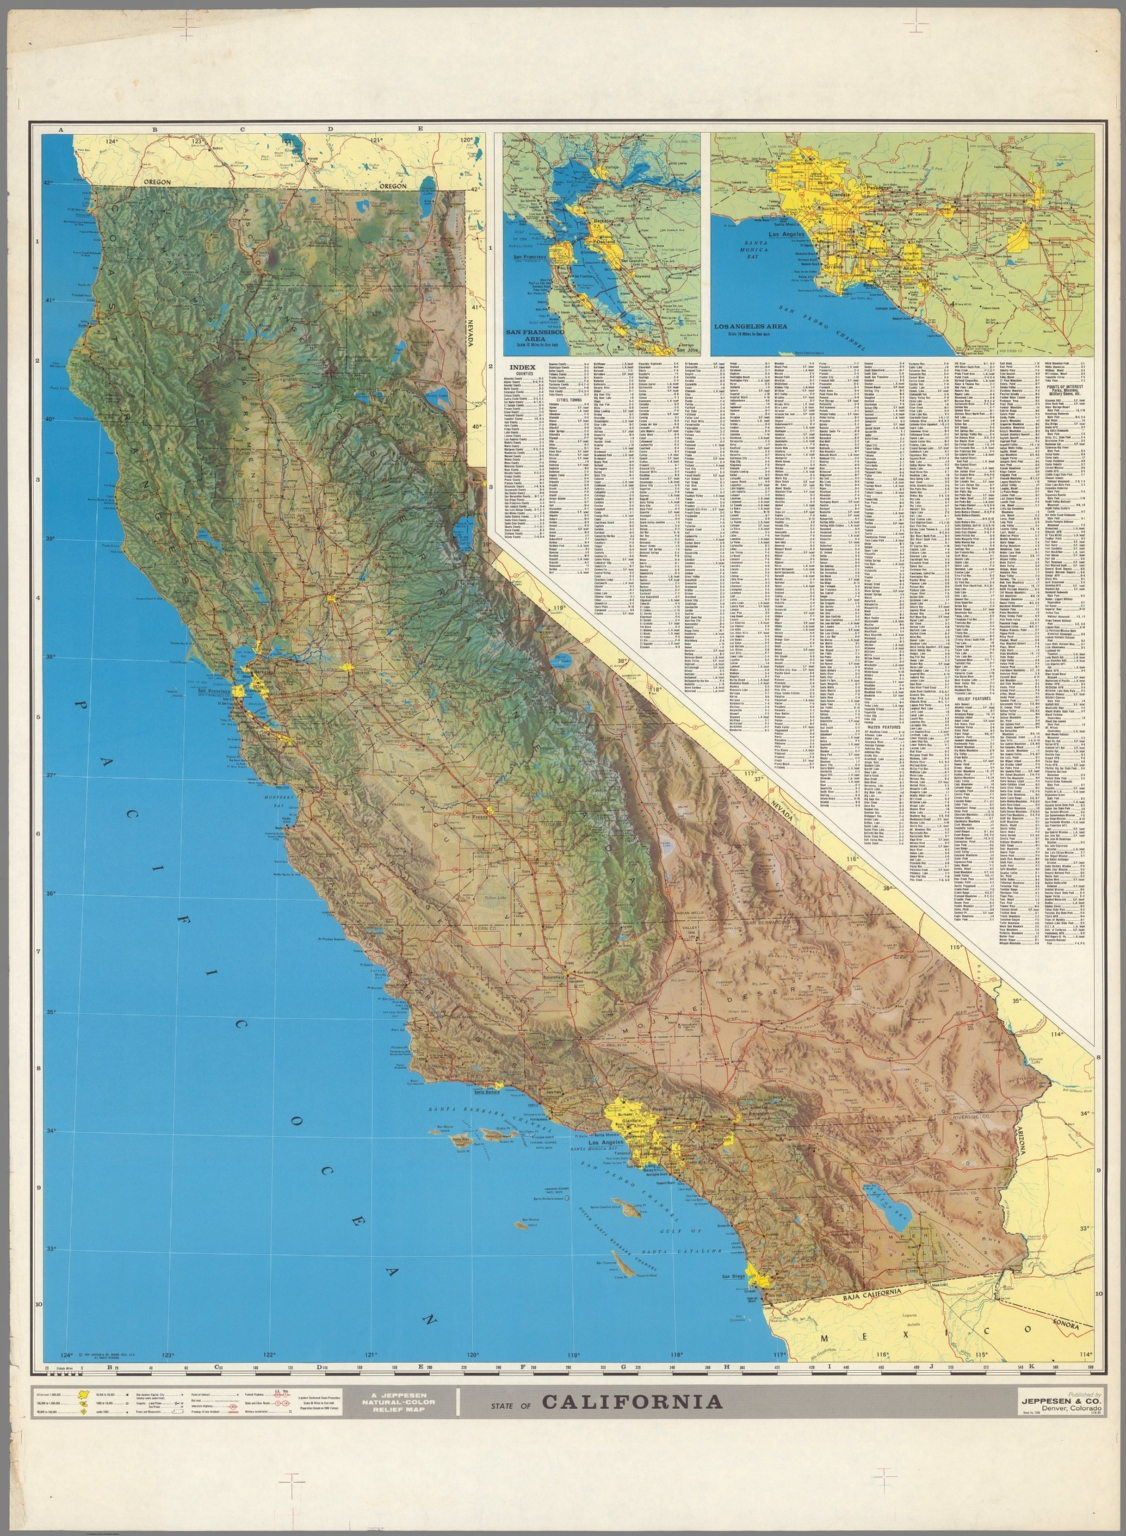 A Jeppesen natural - color relief map - David Rumsey Historical Map on la california map, geologic map, california disaster map, california drought 2013 map, california regions coloring page, california nature map, california love map, california safety map, south orange county california map, california chaparral biome map, california regions map, california palm trees art, california geographical map, political map, california painting map, california geology map, california food map, california snow depth map, washington topographic map, california mountains map,